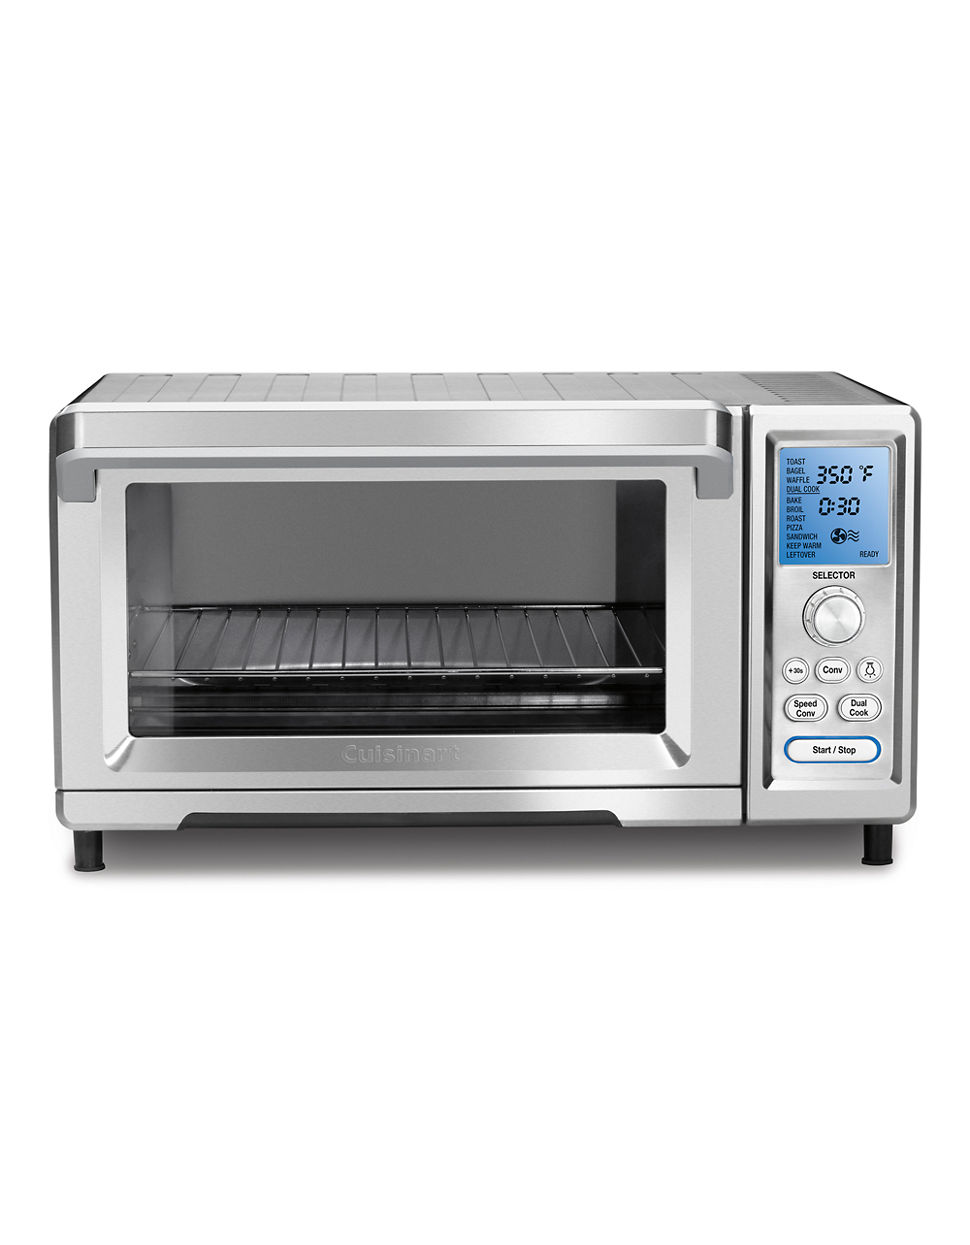 convection ca sunroom tob silver costco uncommon kitchen c broiler top reviews amazon home of beautiful bm full cuisinart counter size oven toaster exquisite wonderful